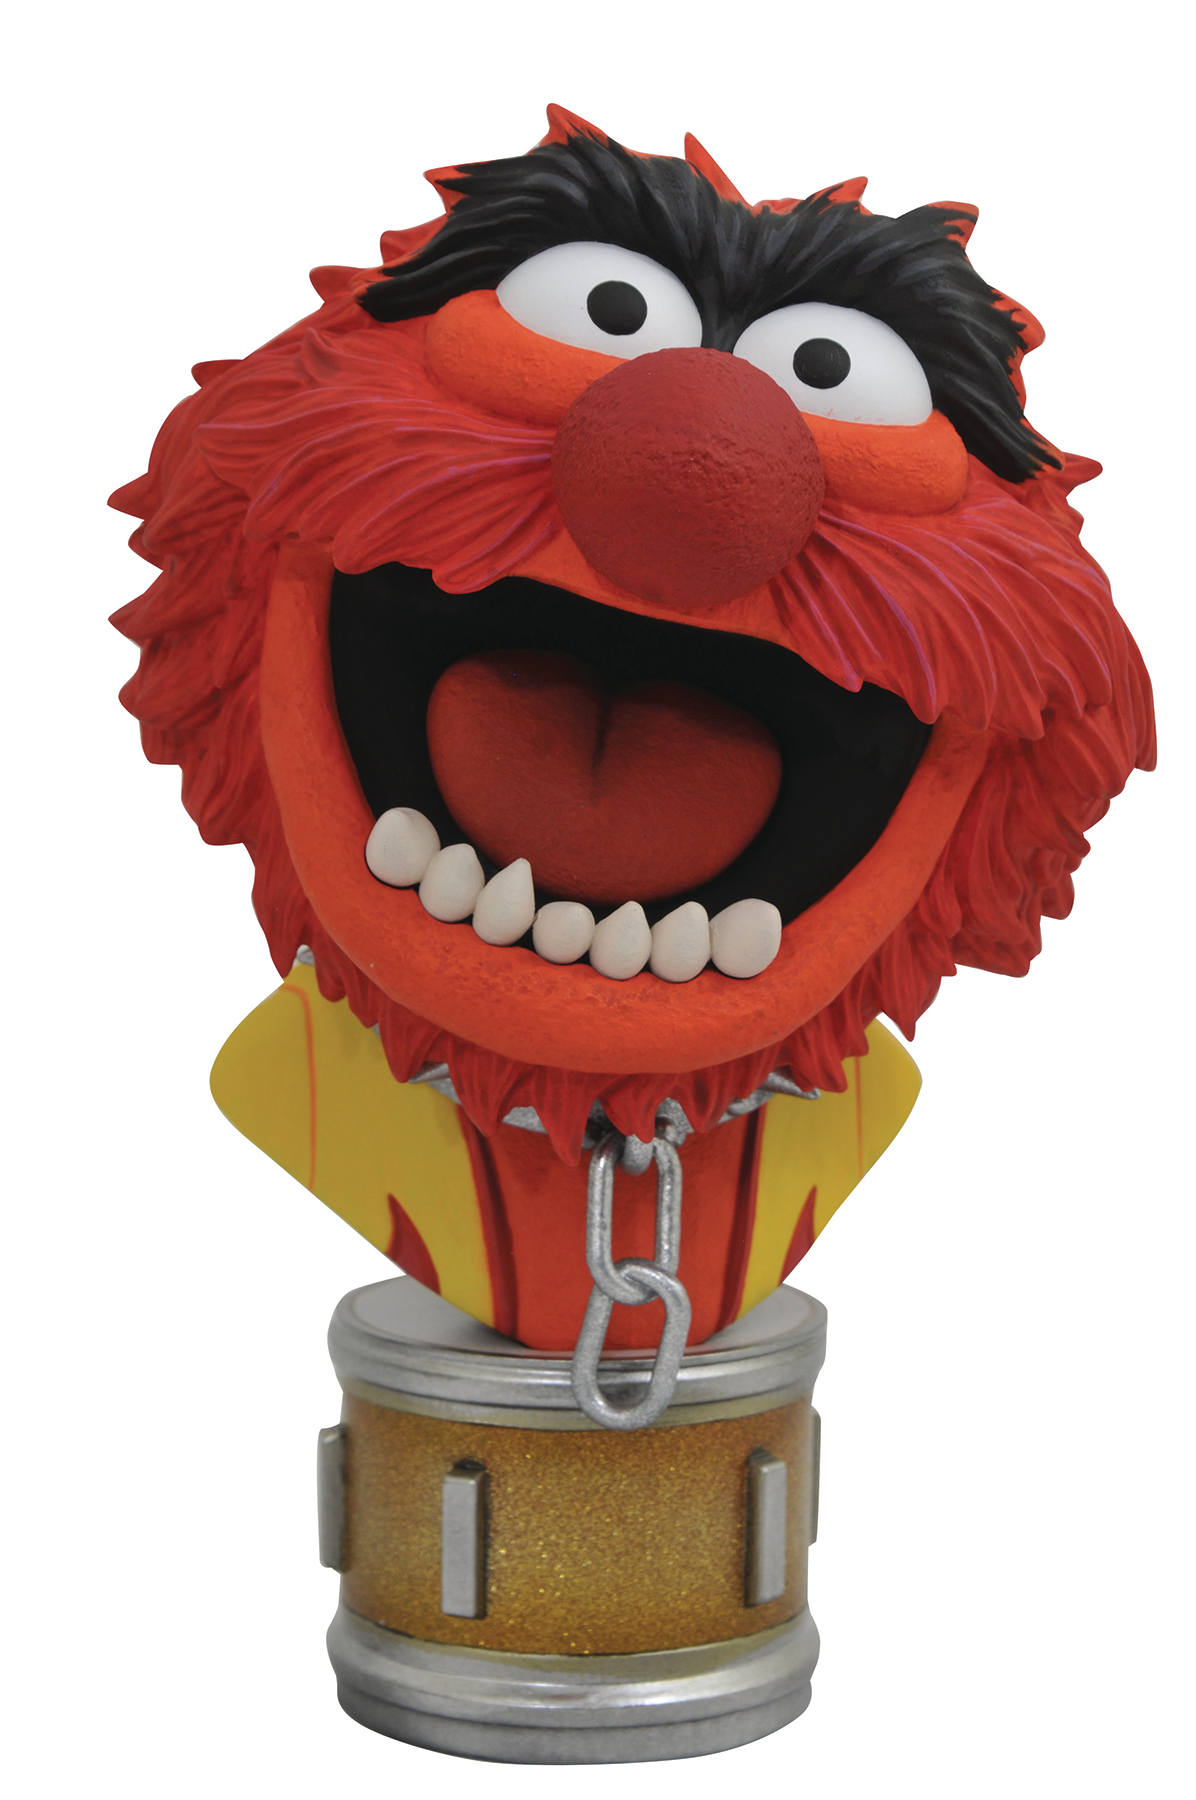 LEGENDARY FILM MUPPETS ANIMAL 1/2 SCALE BUST